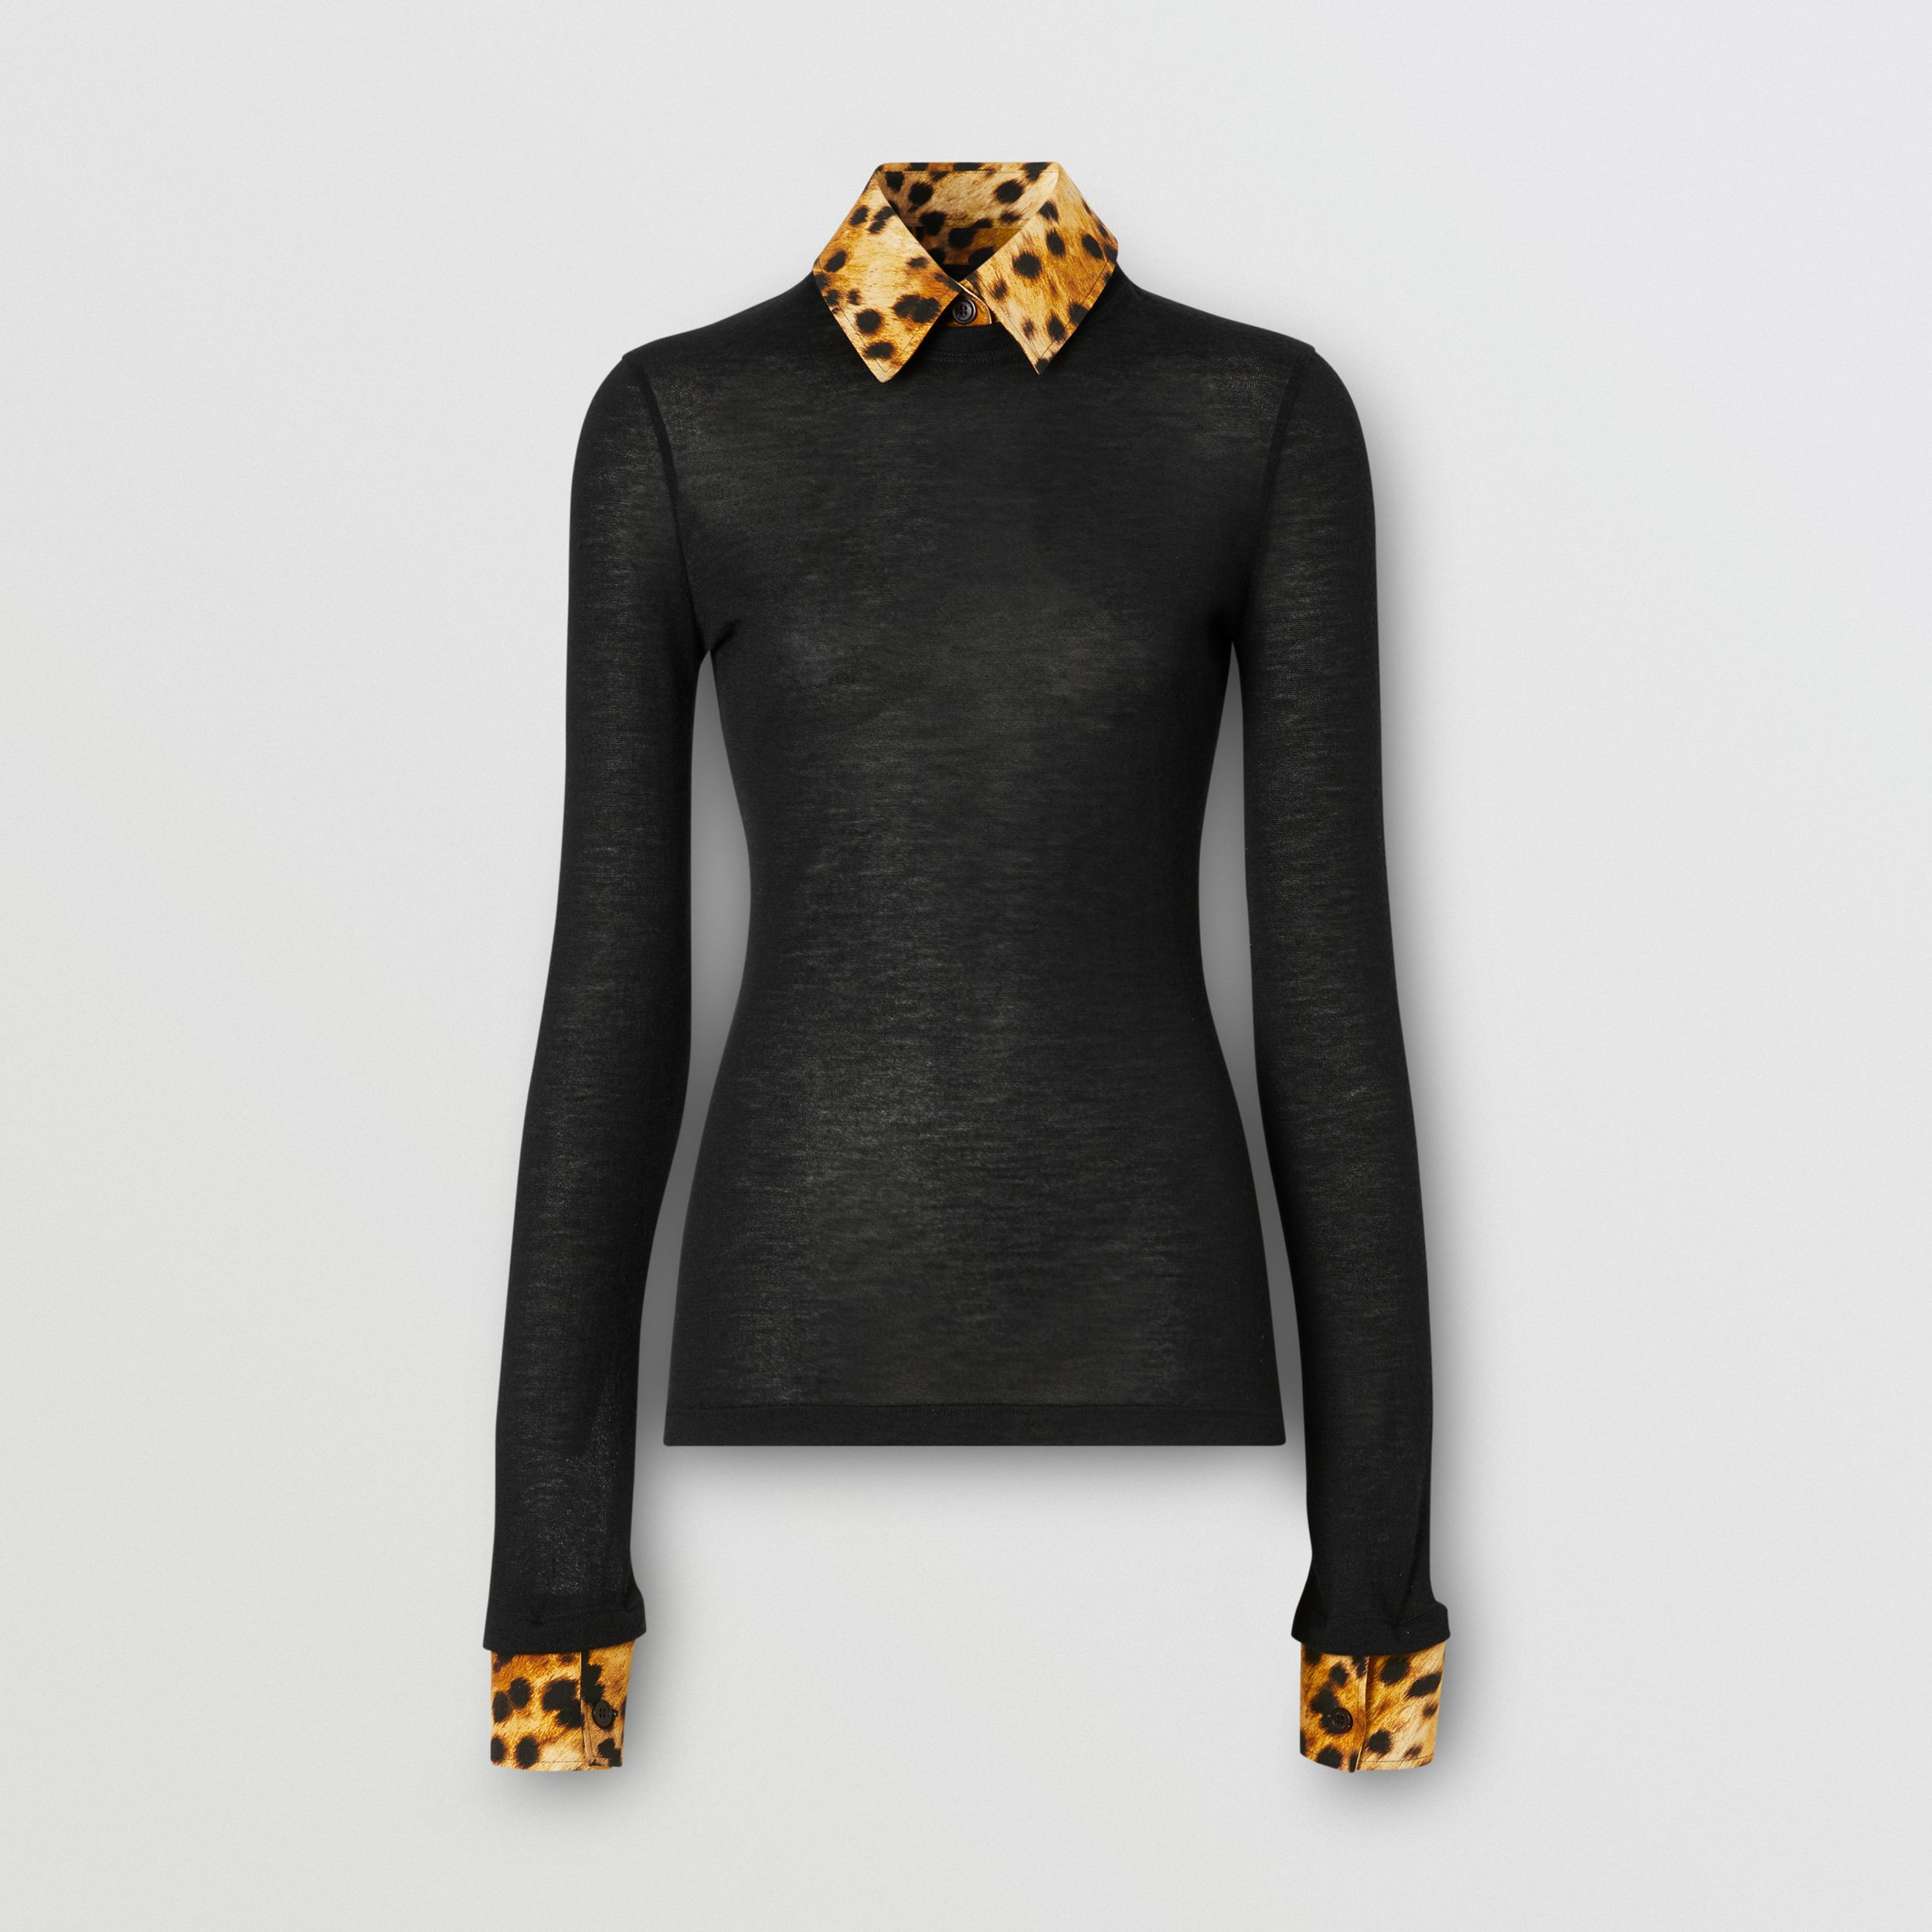 Long-sleeve Spotted Monkey Print Trim Cashmere Top in Black - Women | Burberry - 4